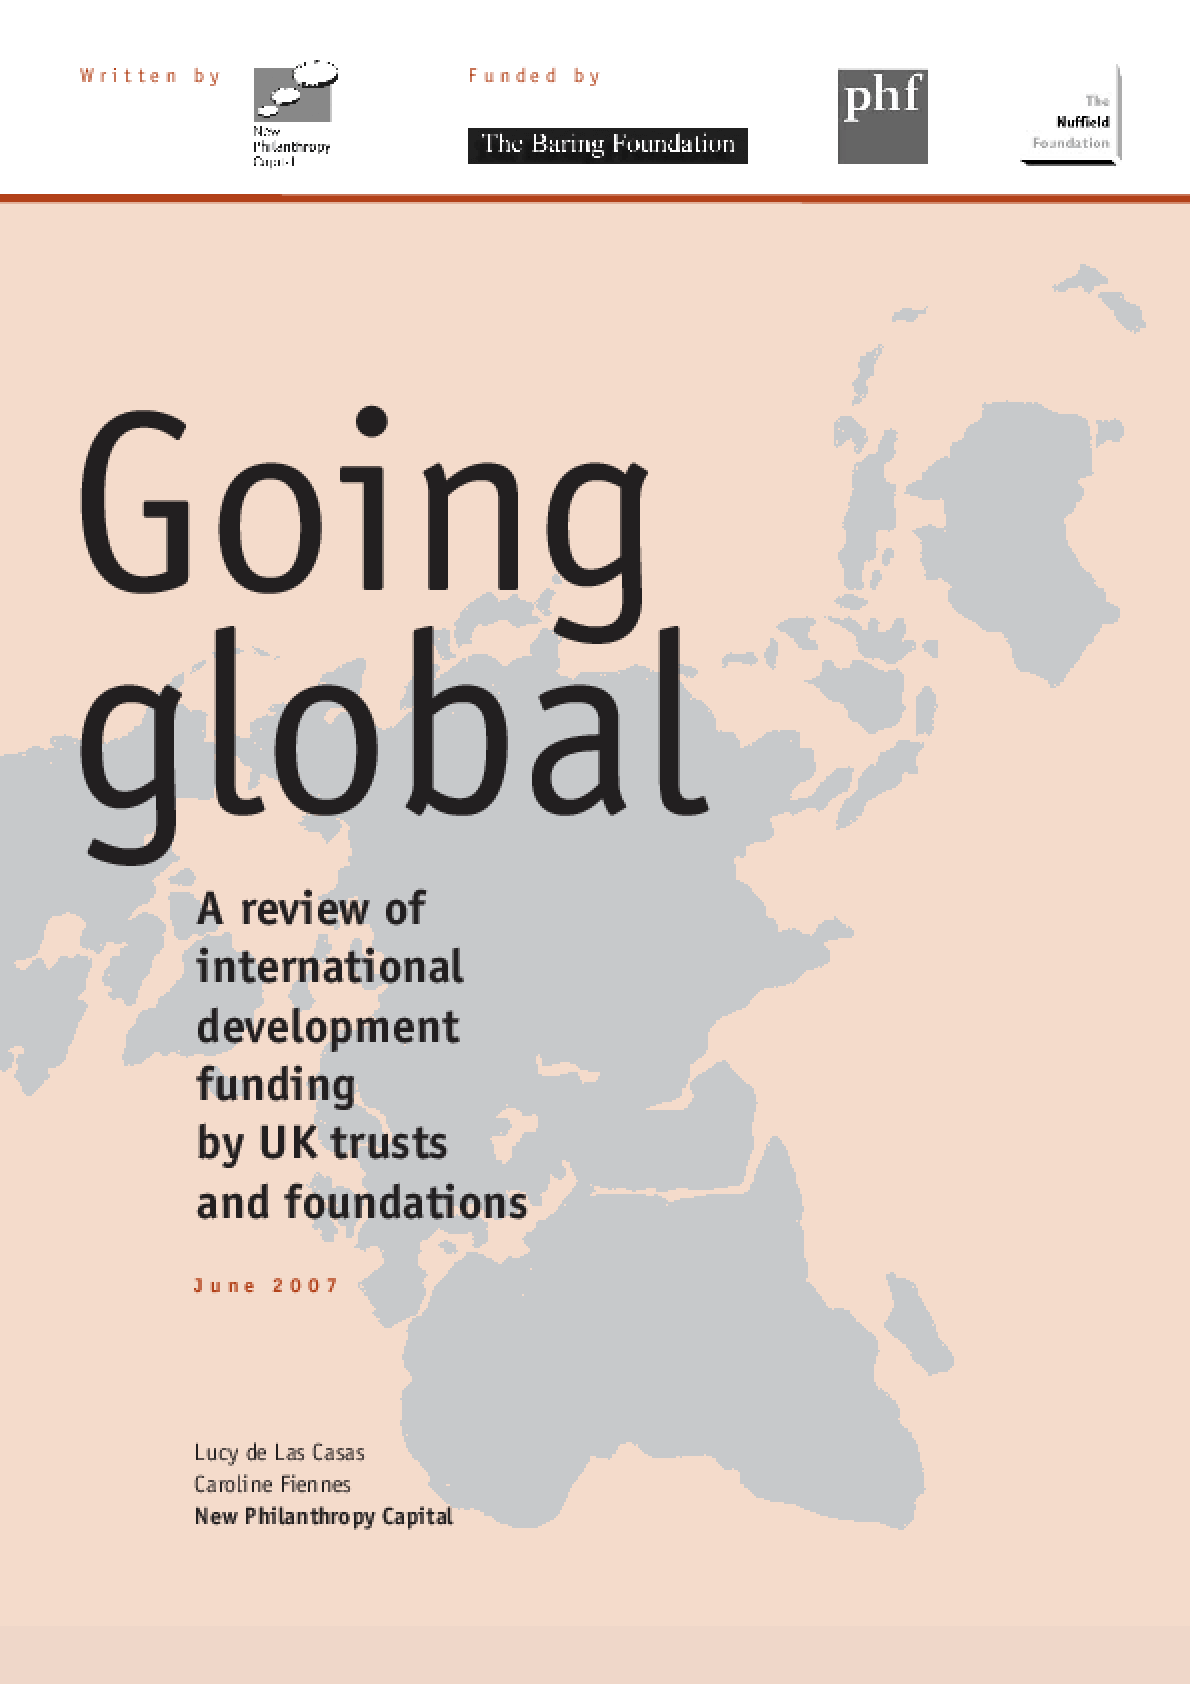 Going Global: A Review of International Development Funding by UK Trusts and Foundations